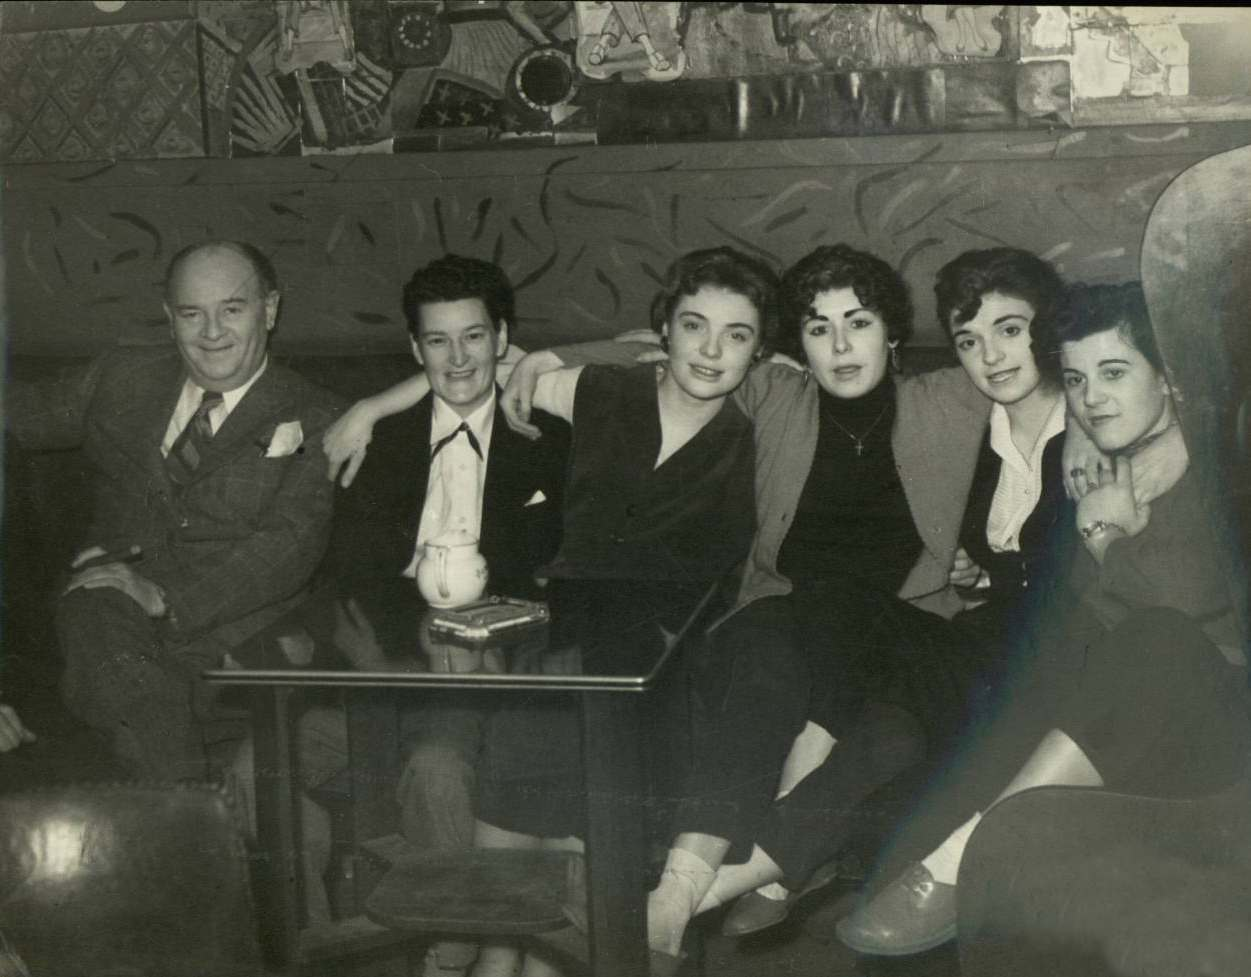 The Gateways Club, the owner Ted Ware is on the left. c.1953.